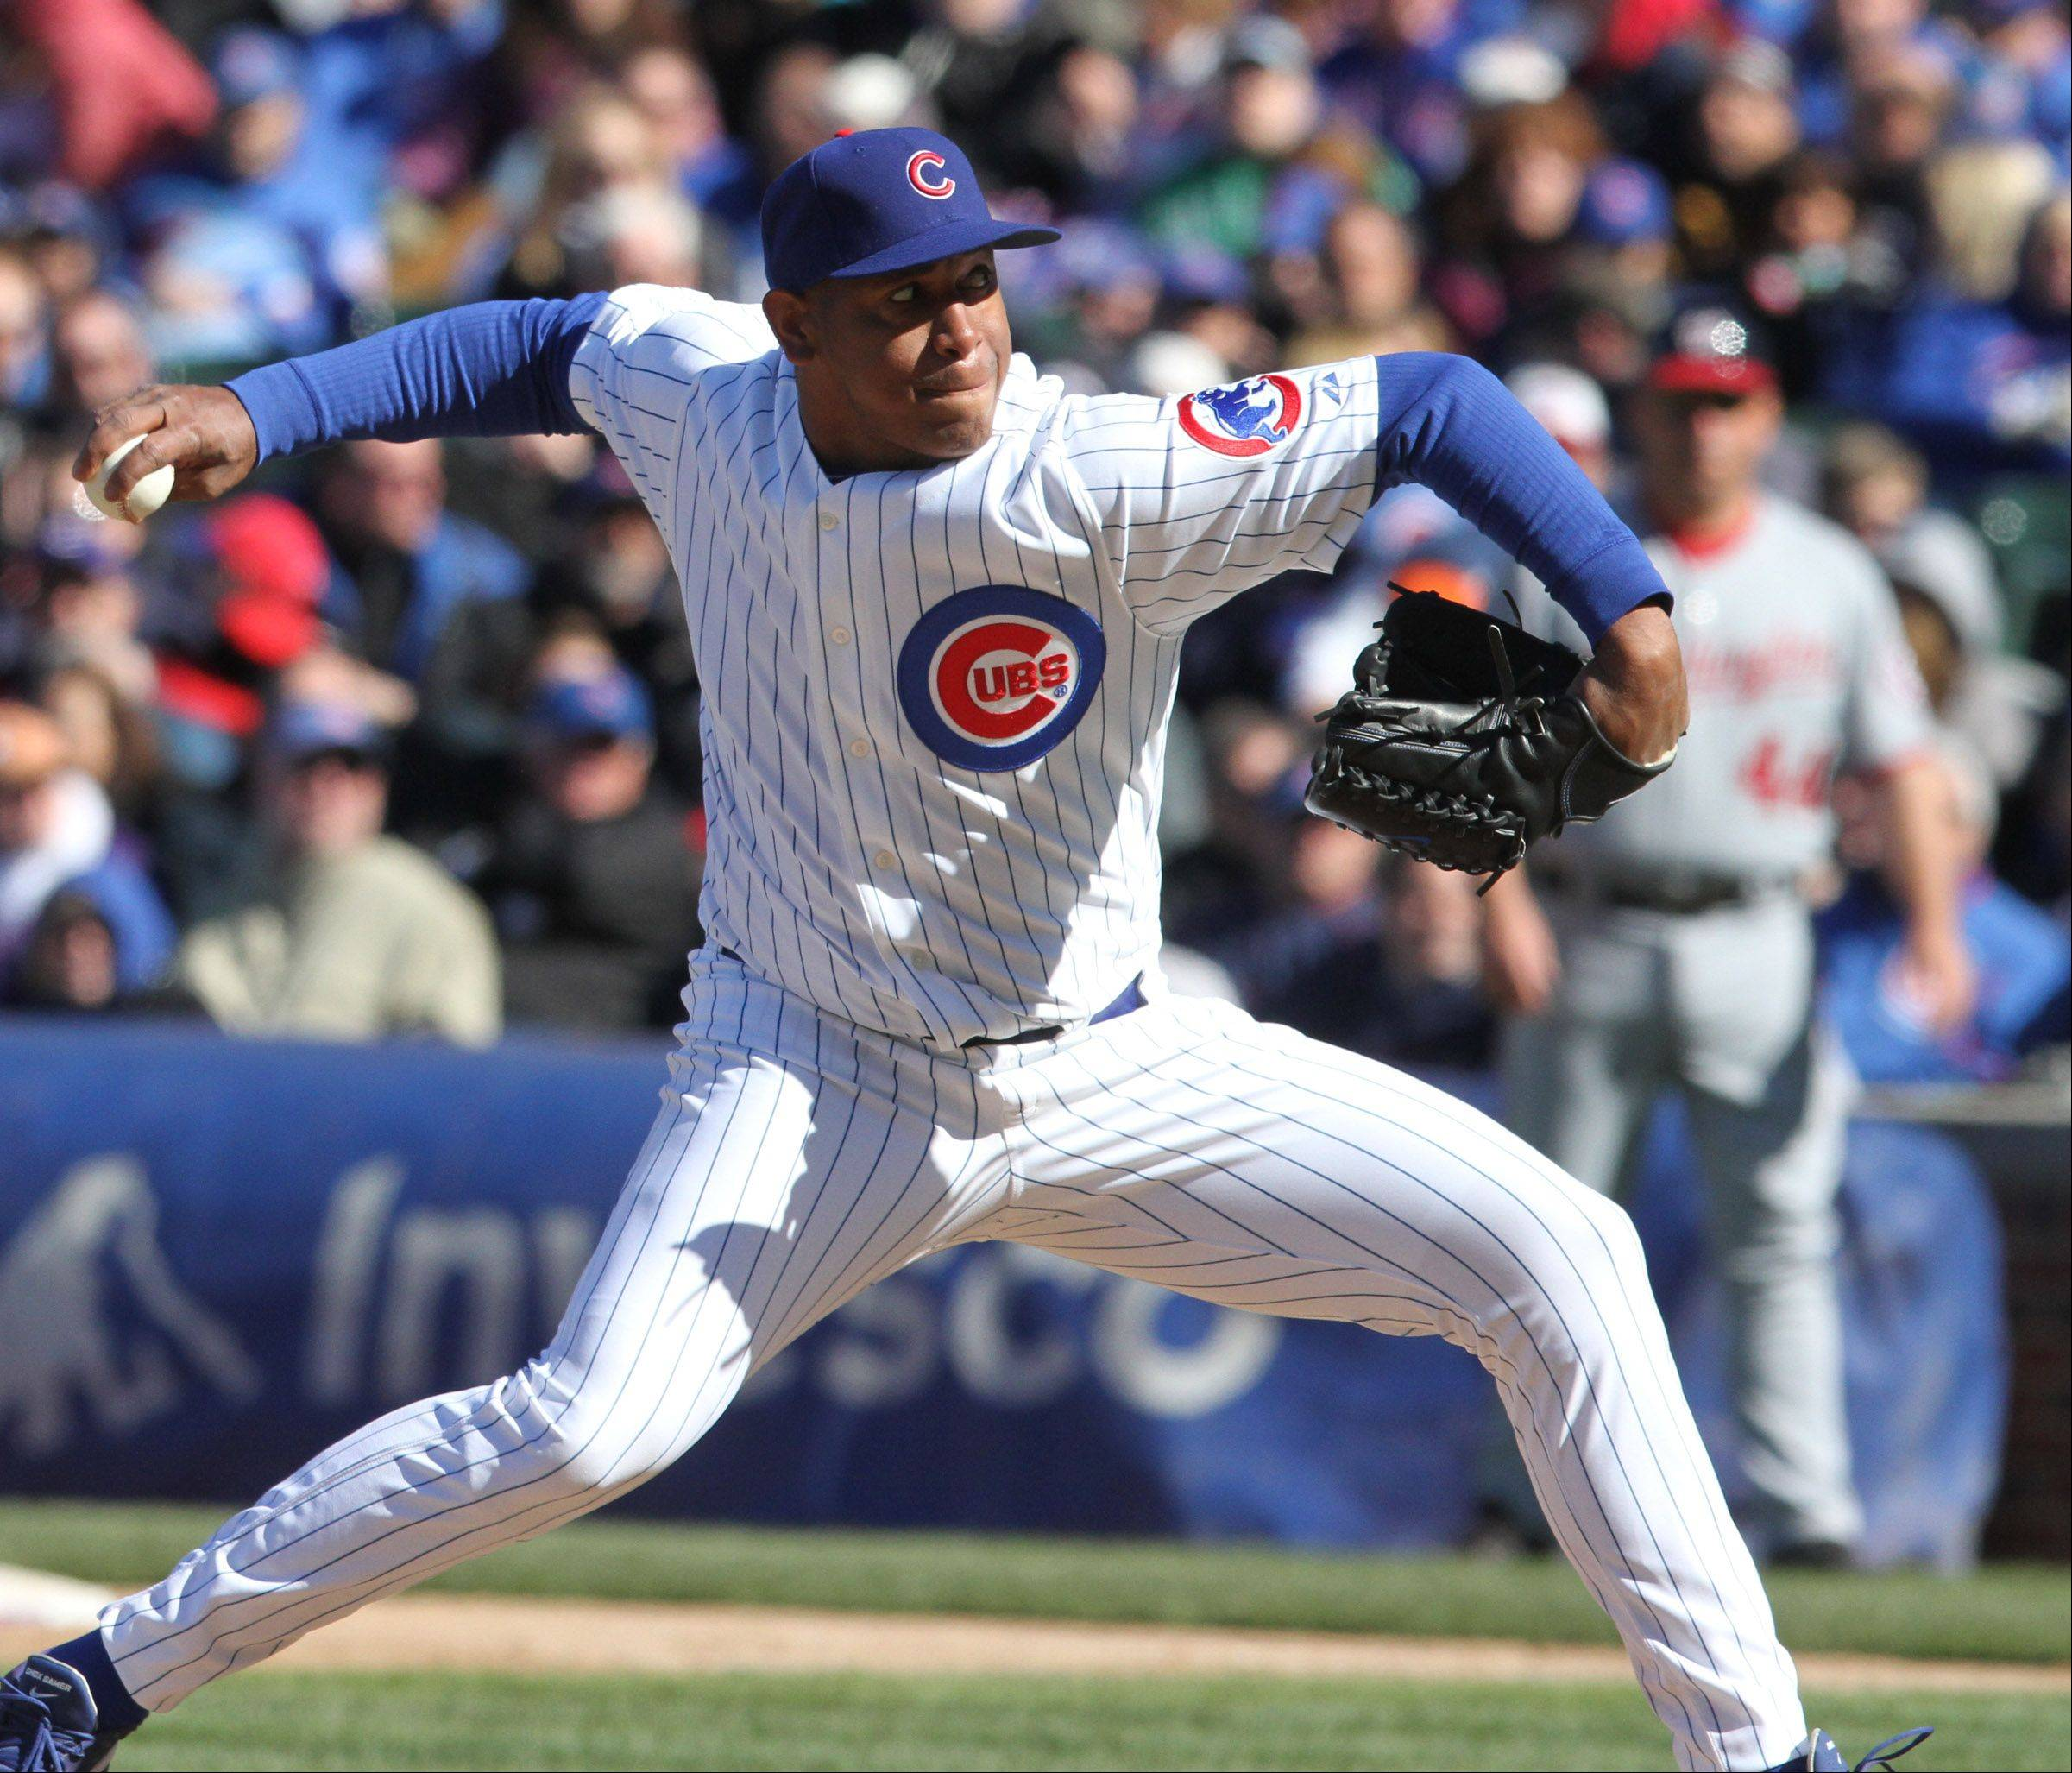 Chicago Cubs closing pitcher Carlos Marmol delivers.